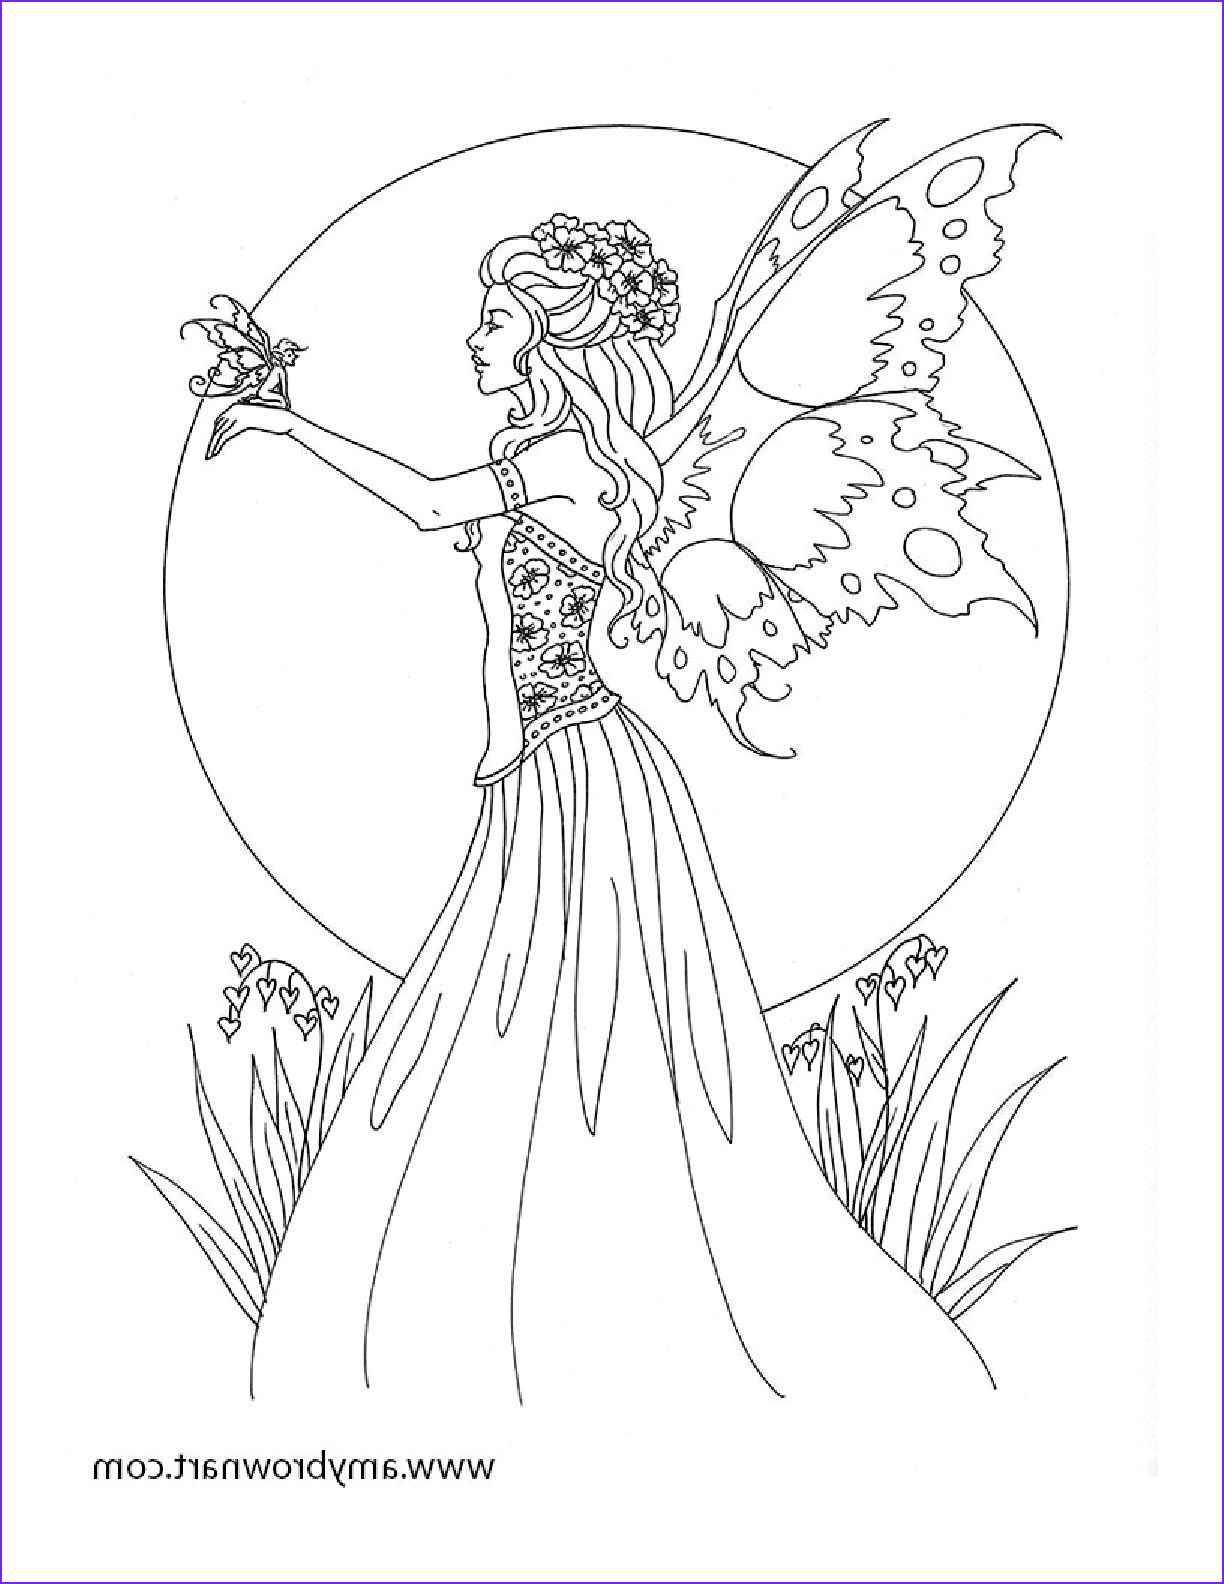 Amy Brown Fairy Coloring Book Fairy Myth Mythical Mystical In 2020 Fairy Coloring Pages Fairy Coloring Fairy Coloring Book